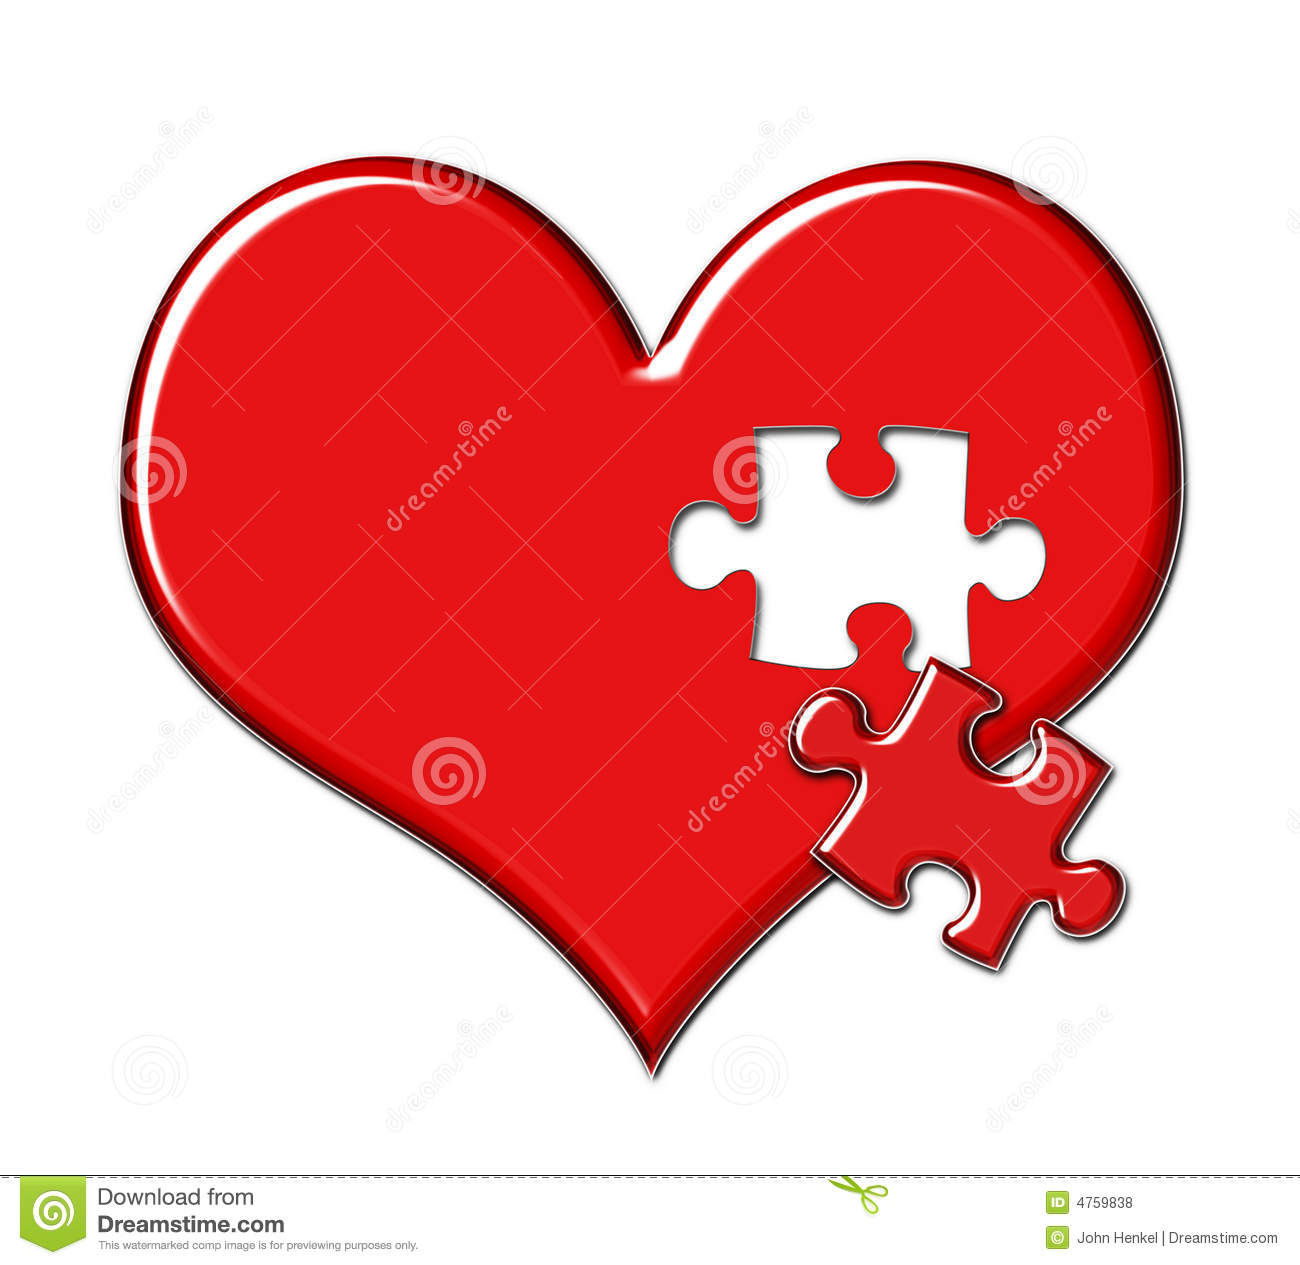 heart with puzzle piece missing royalty free stock photos puzzle graphics for powerpoint free puzzle pieces clipart for powerpoint